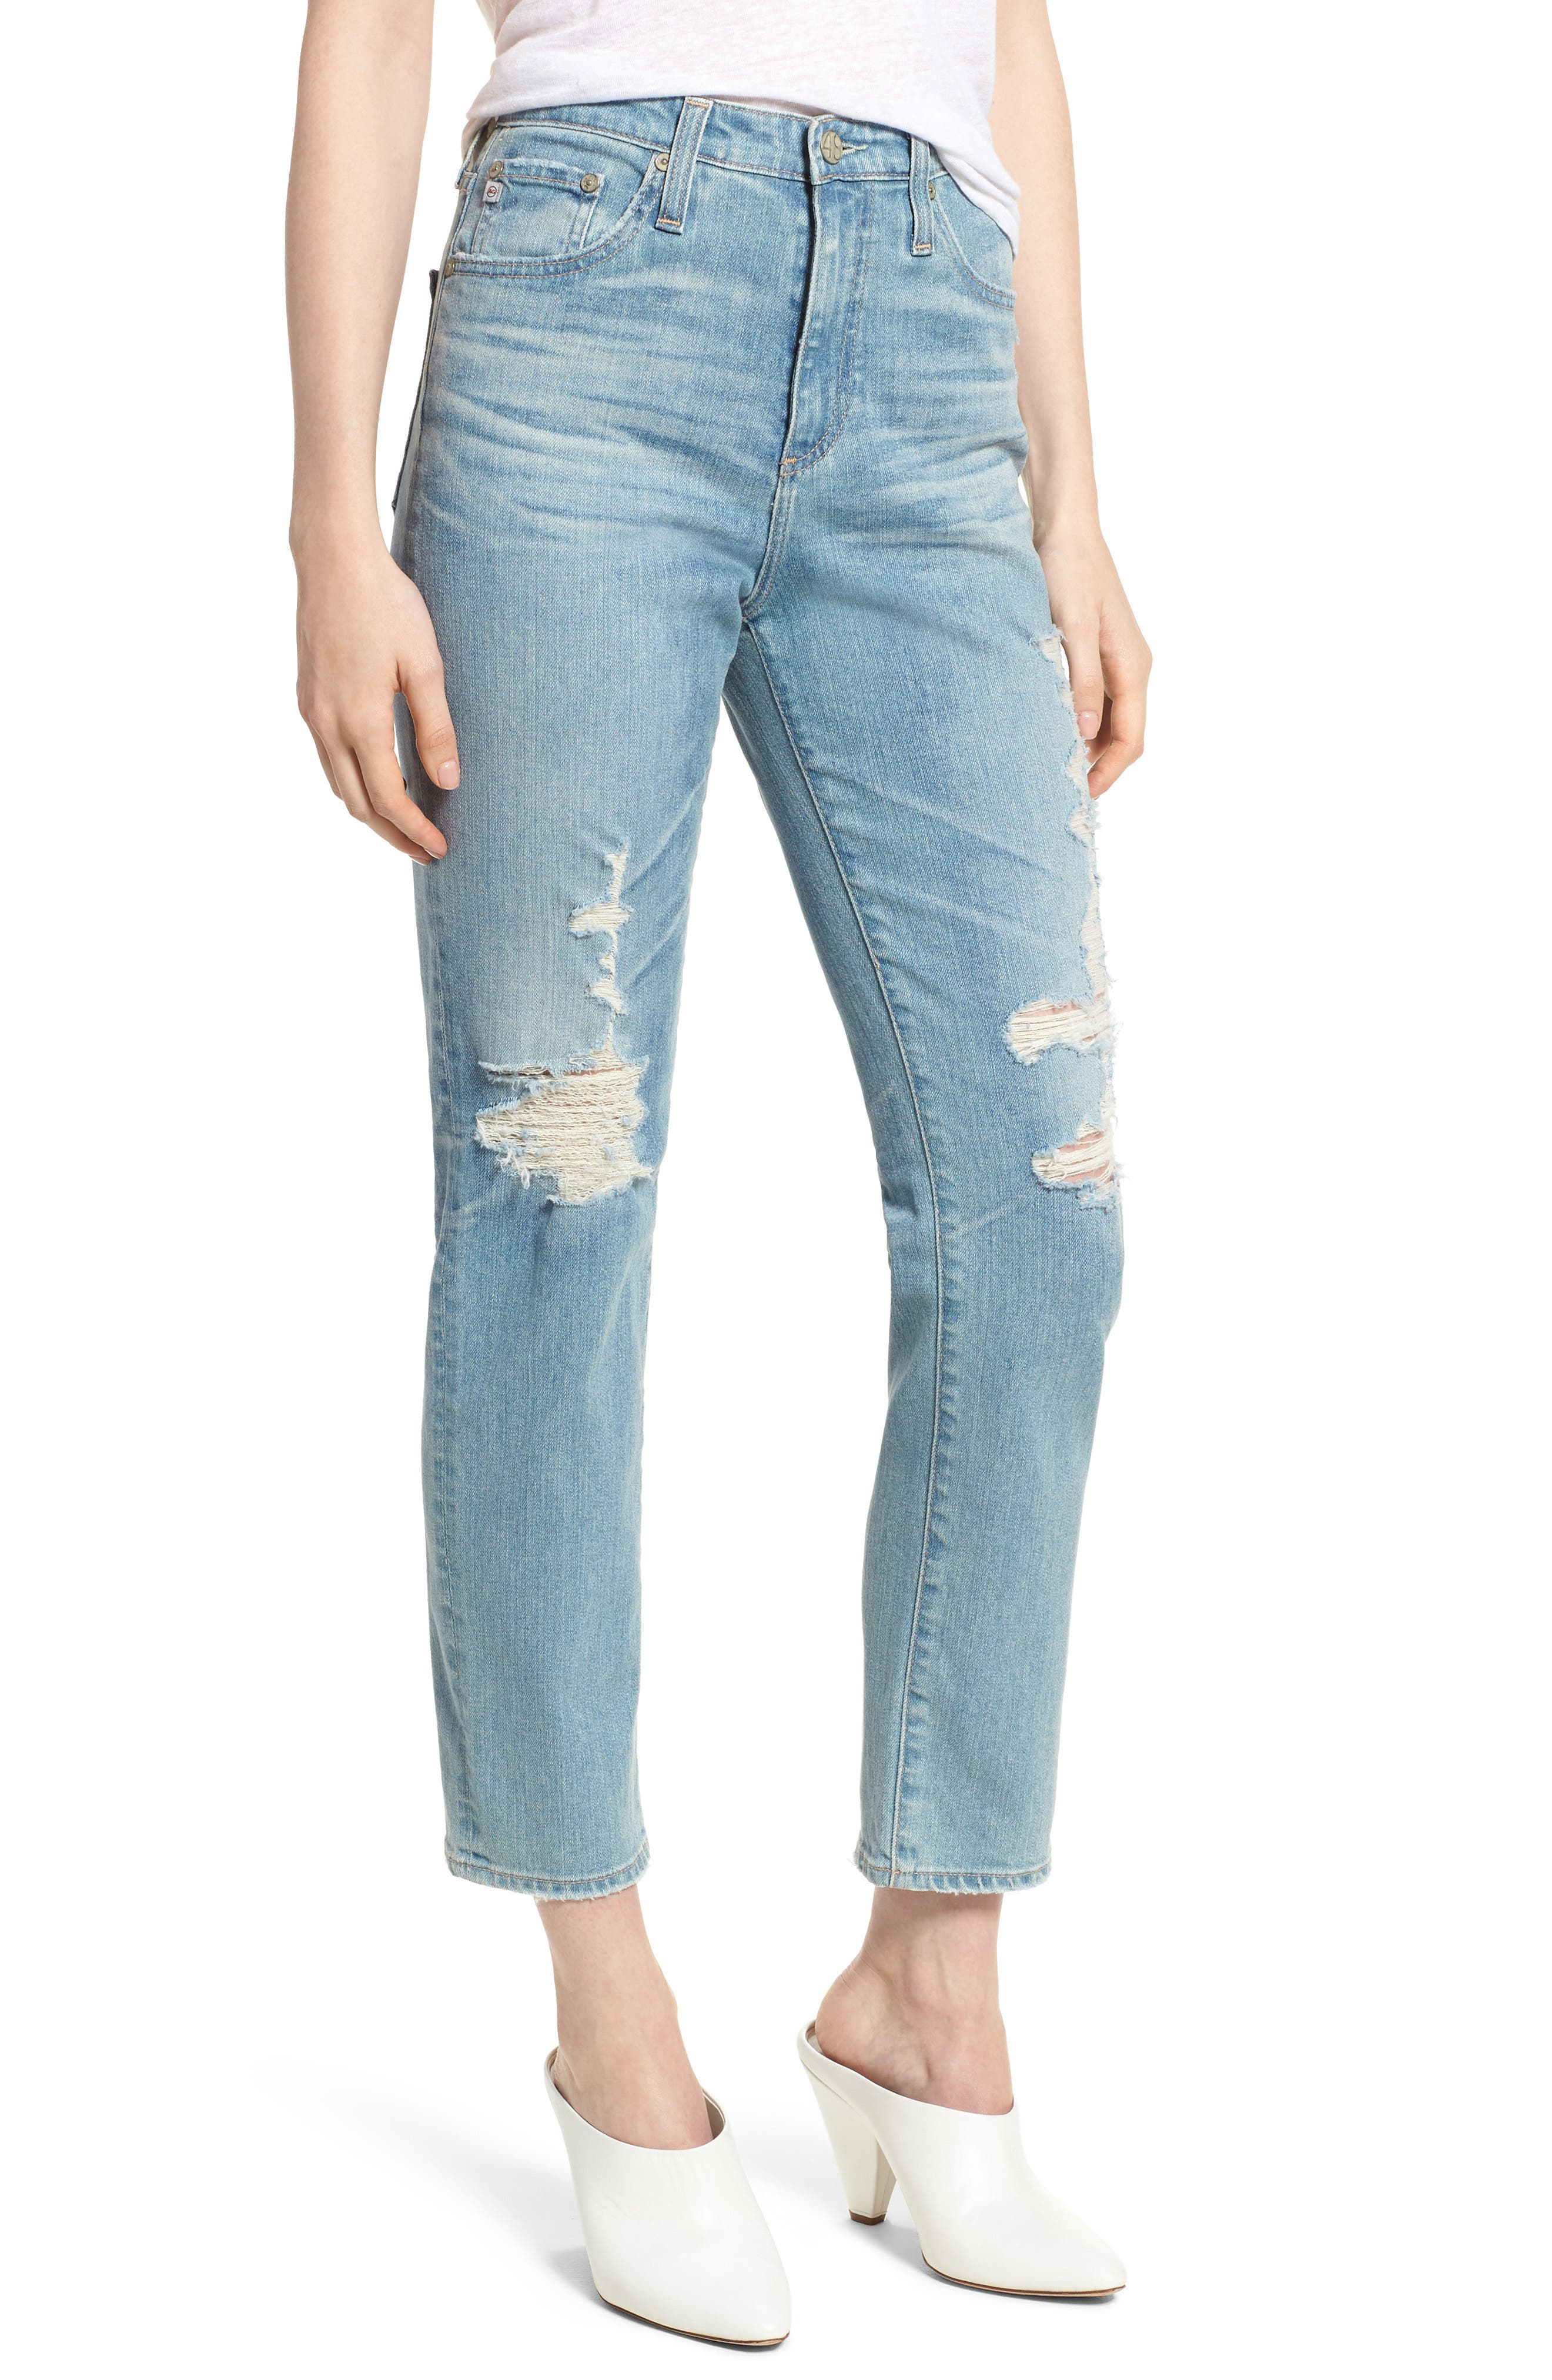 'The Phoebe' Vintage High Rise Straight Leg Jeans,                         Main,                         color, 18 Years Headlands